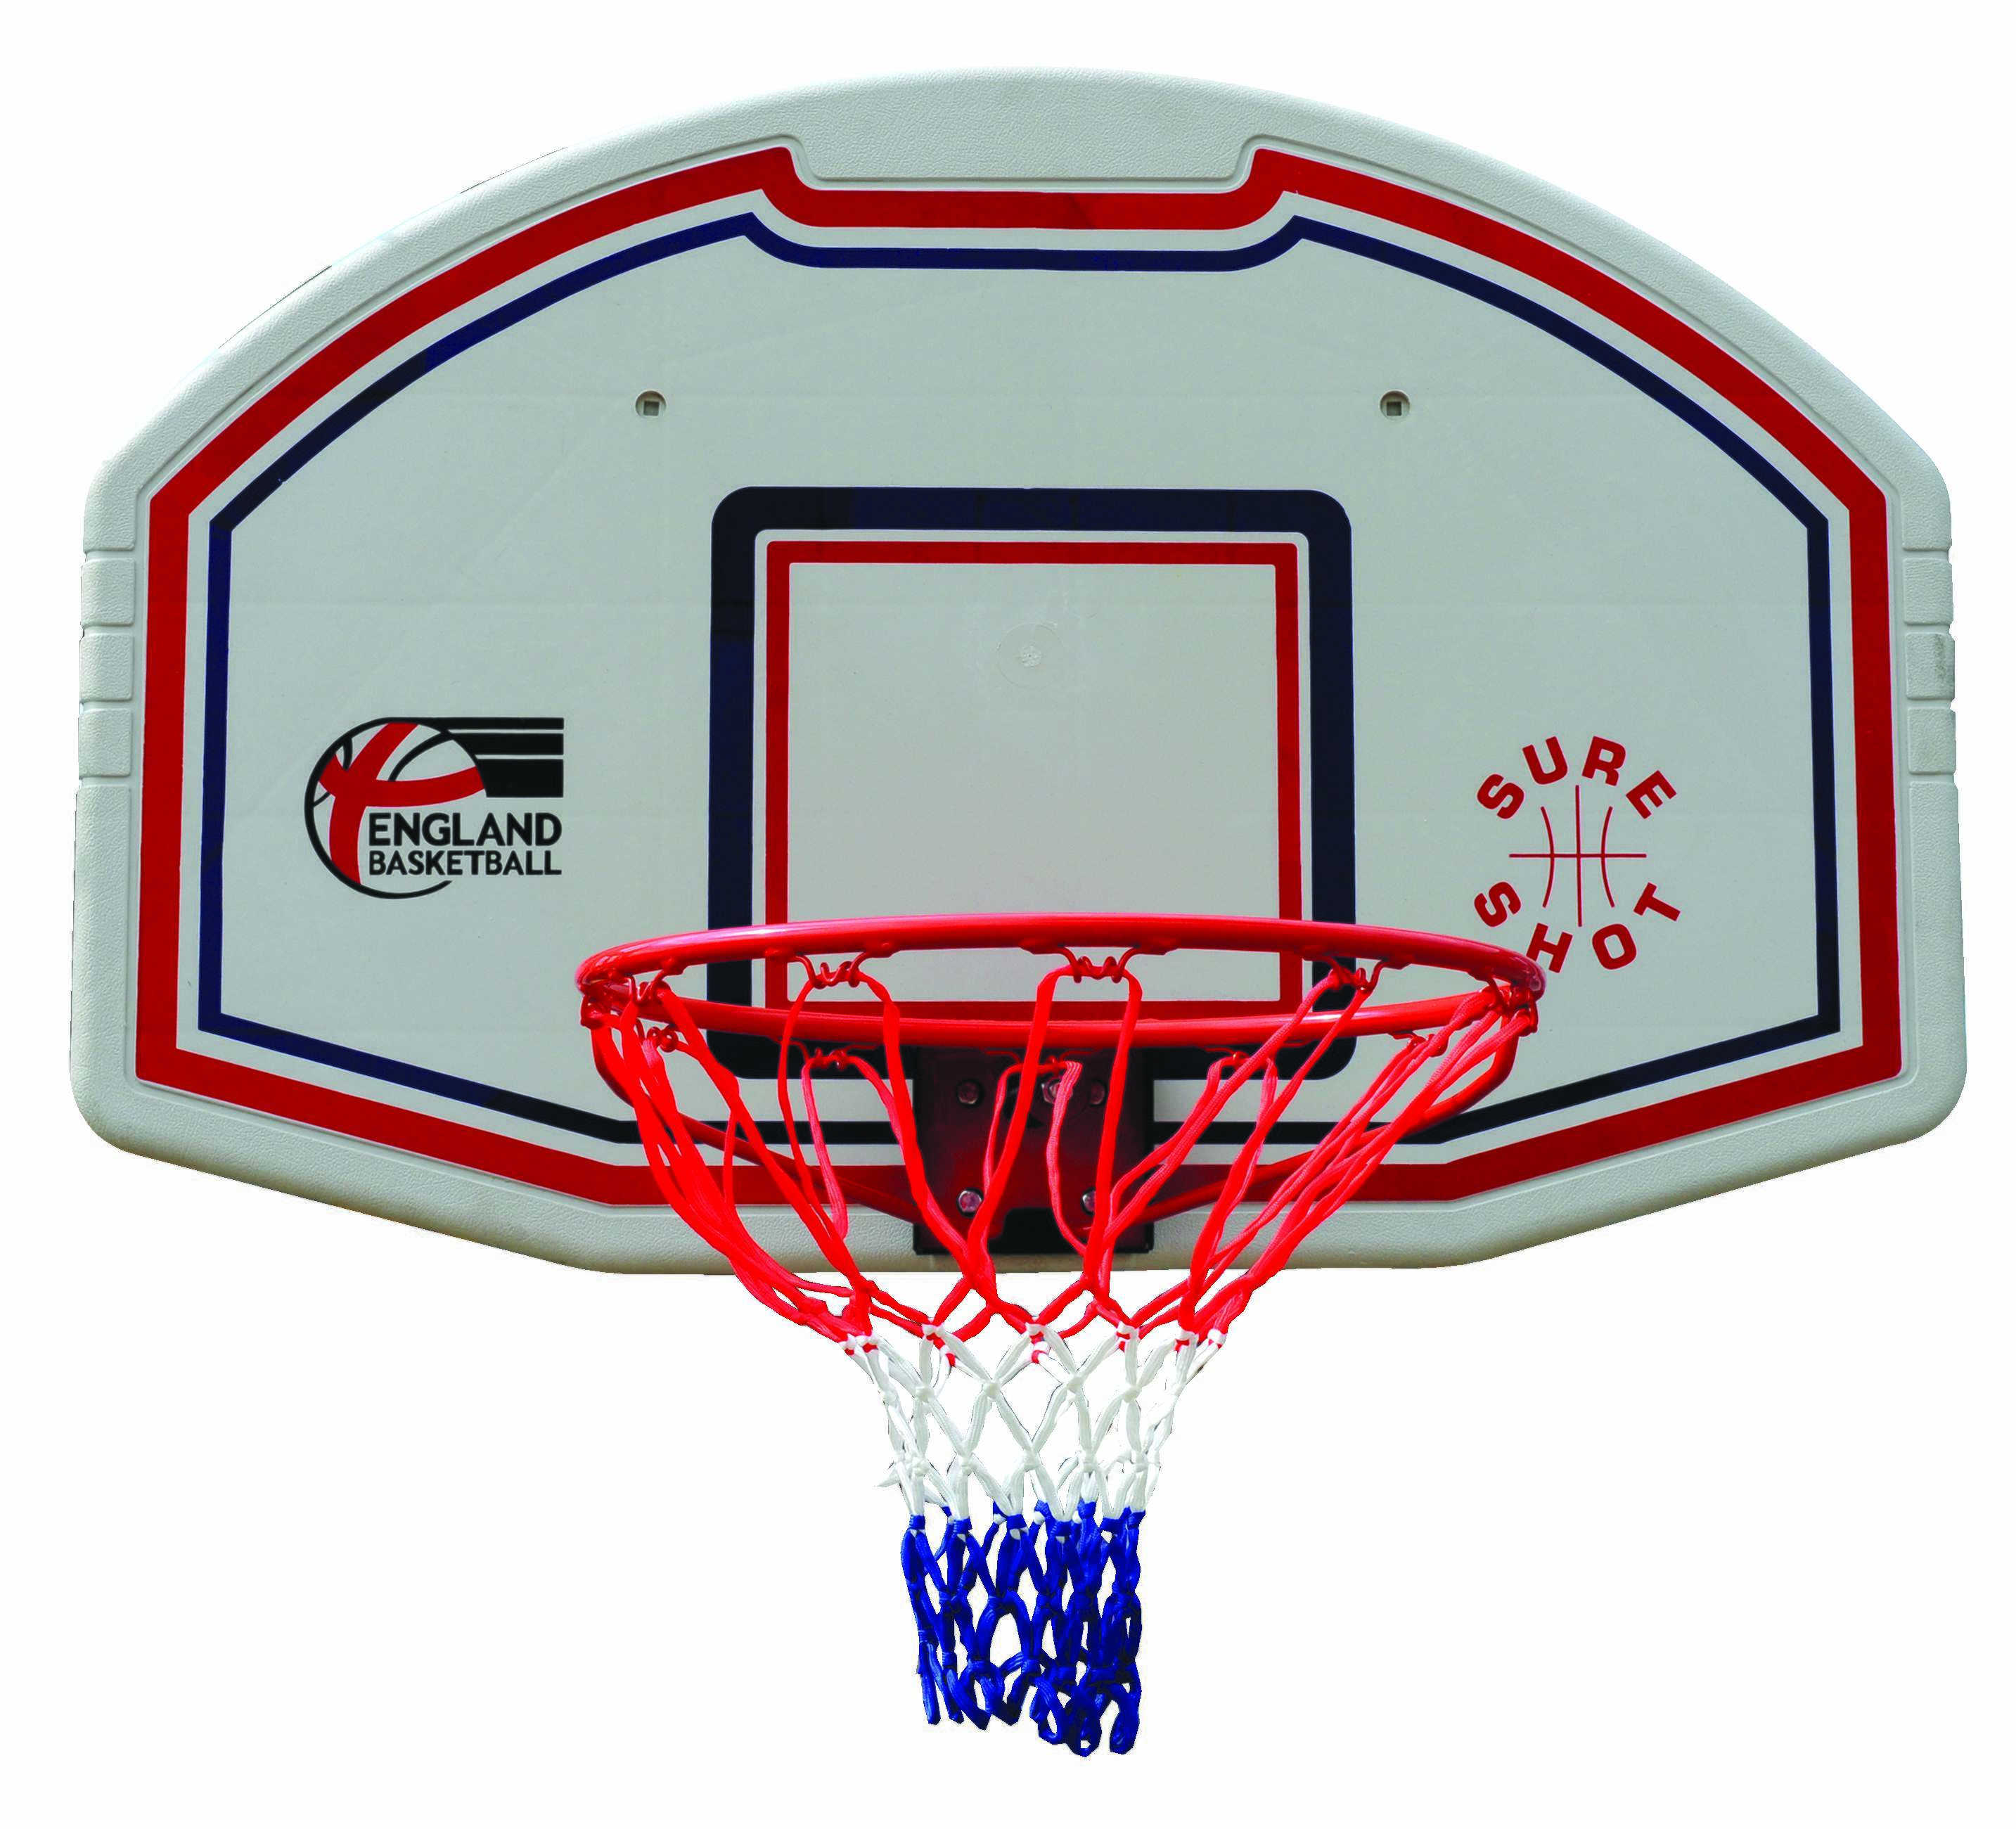 Basketball Ring Target Basketball Backboard With Hoop For Schools And Gardens Net